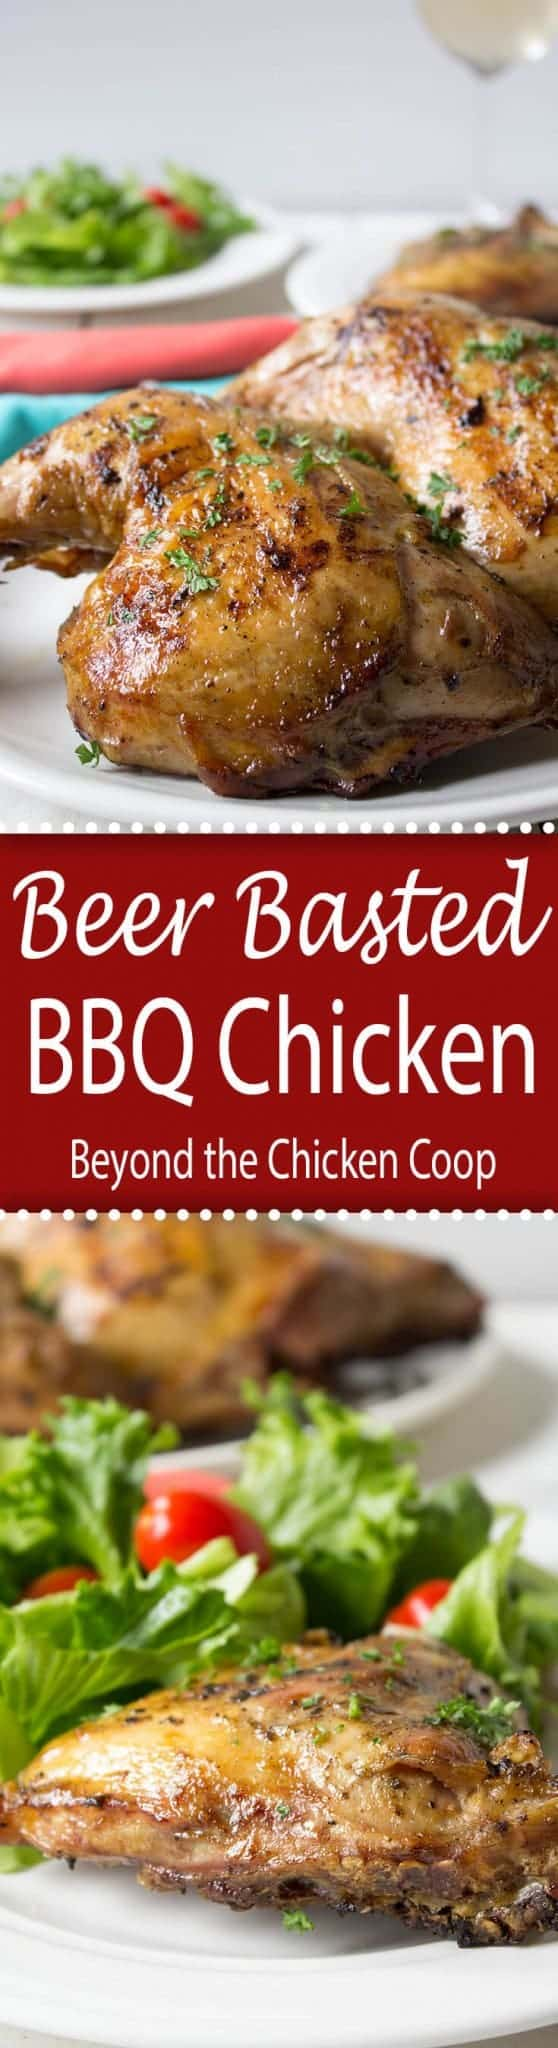 Beer Basted BBQ Chicken is chicken cooked on the grill and brushed with a beer, butter and fresh herb sauce. This is perfect for anytime of the year when you use your barbecue grill.